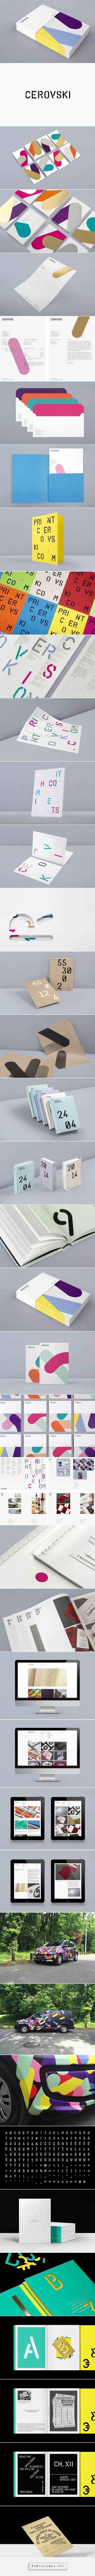 9 best Branding and identities images on Pinterest